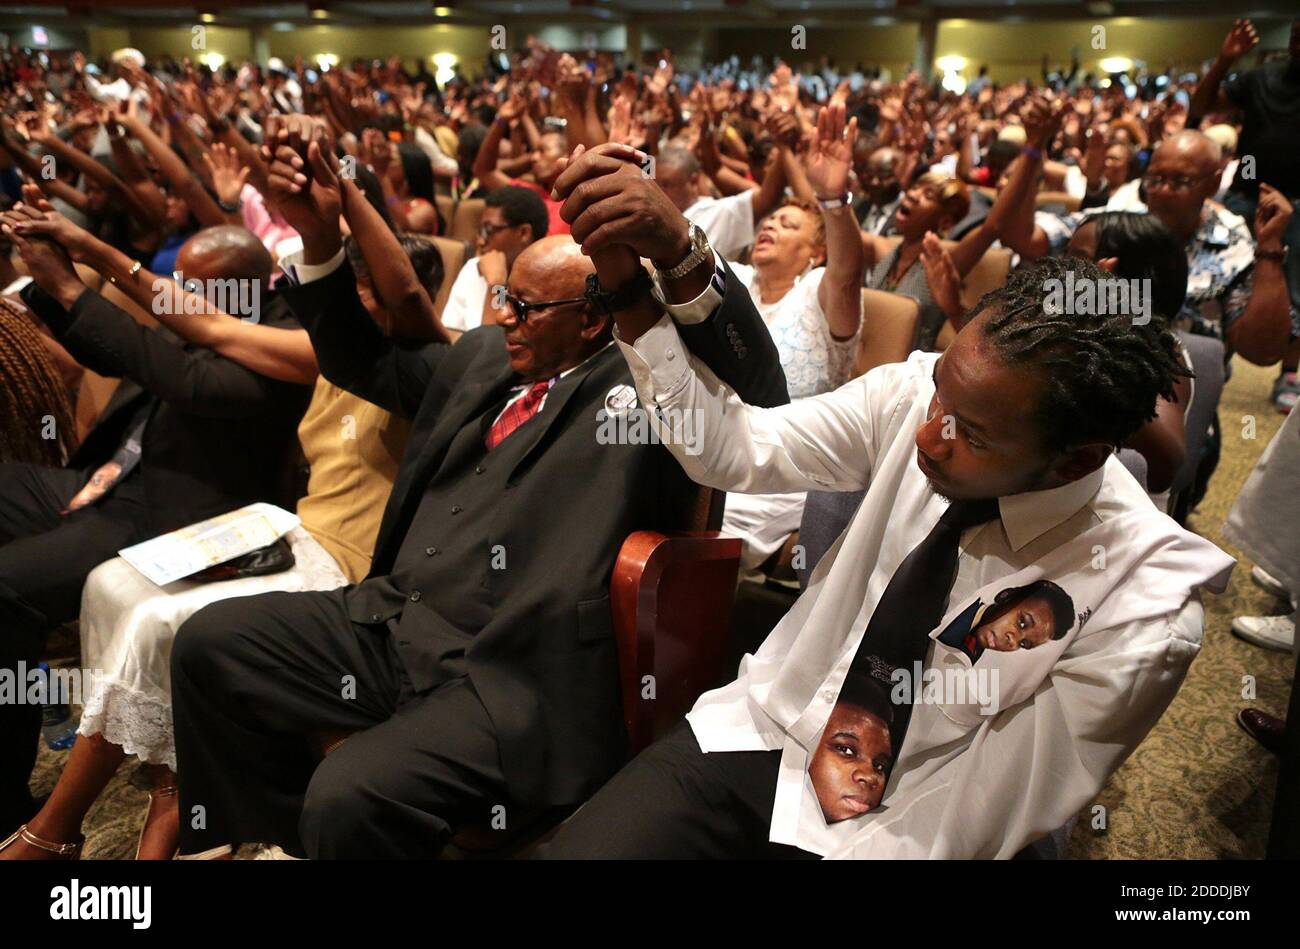 NO FILM, NO VIDEO, NO TV, NO DOCUMENTARY - Leslie McSpadden, Jr., right, and his father Leslie McSpadden, Sr. raise their hands in prayer during the funeral for Michael Brown at Friendly Temple Missionary Baptist Church on Monday, Aug. 25, 2014. The men are the brother and father, respectively, of Michael Brown's mother Lesley McSpadden. Photo by Robert Cohen/St. Louis Post-Dispatch/MCT/ABACAPRESS.COM Stock Photo